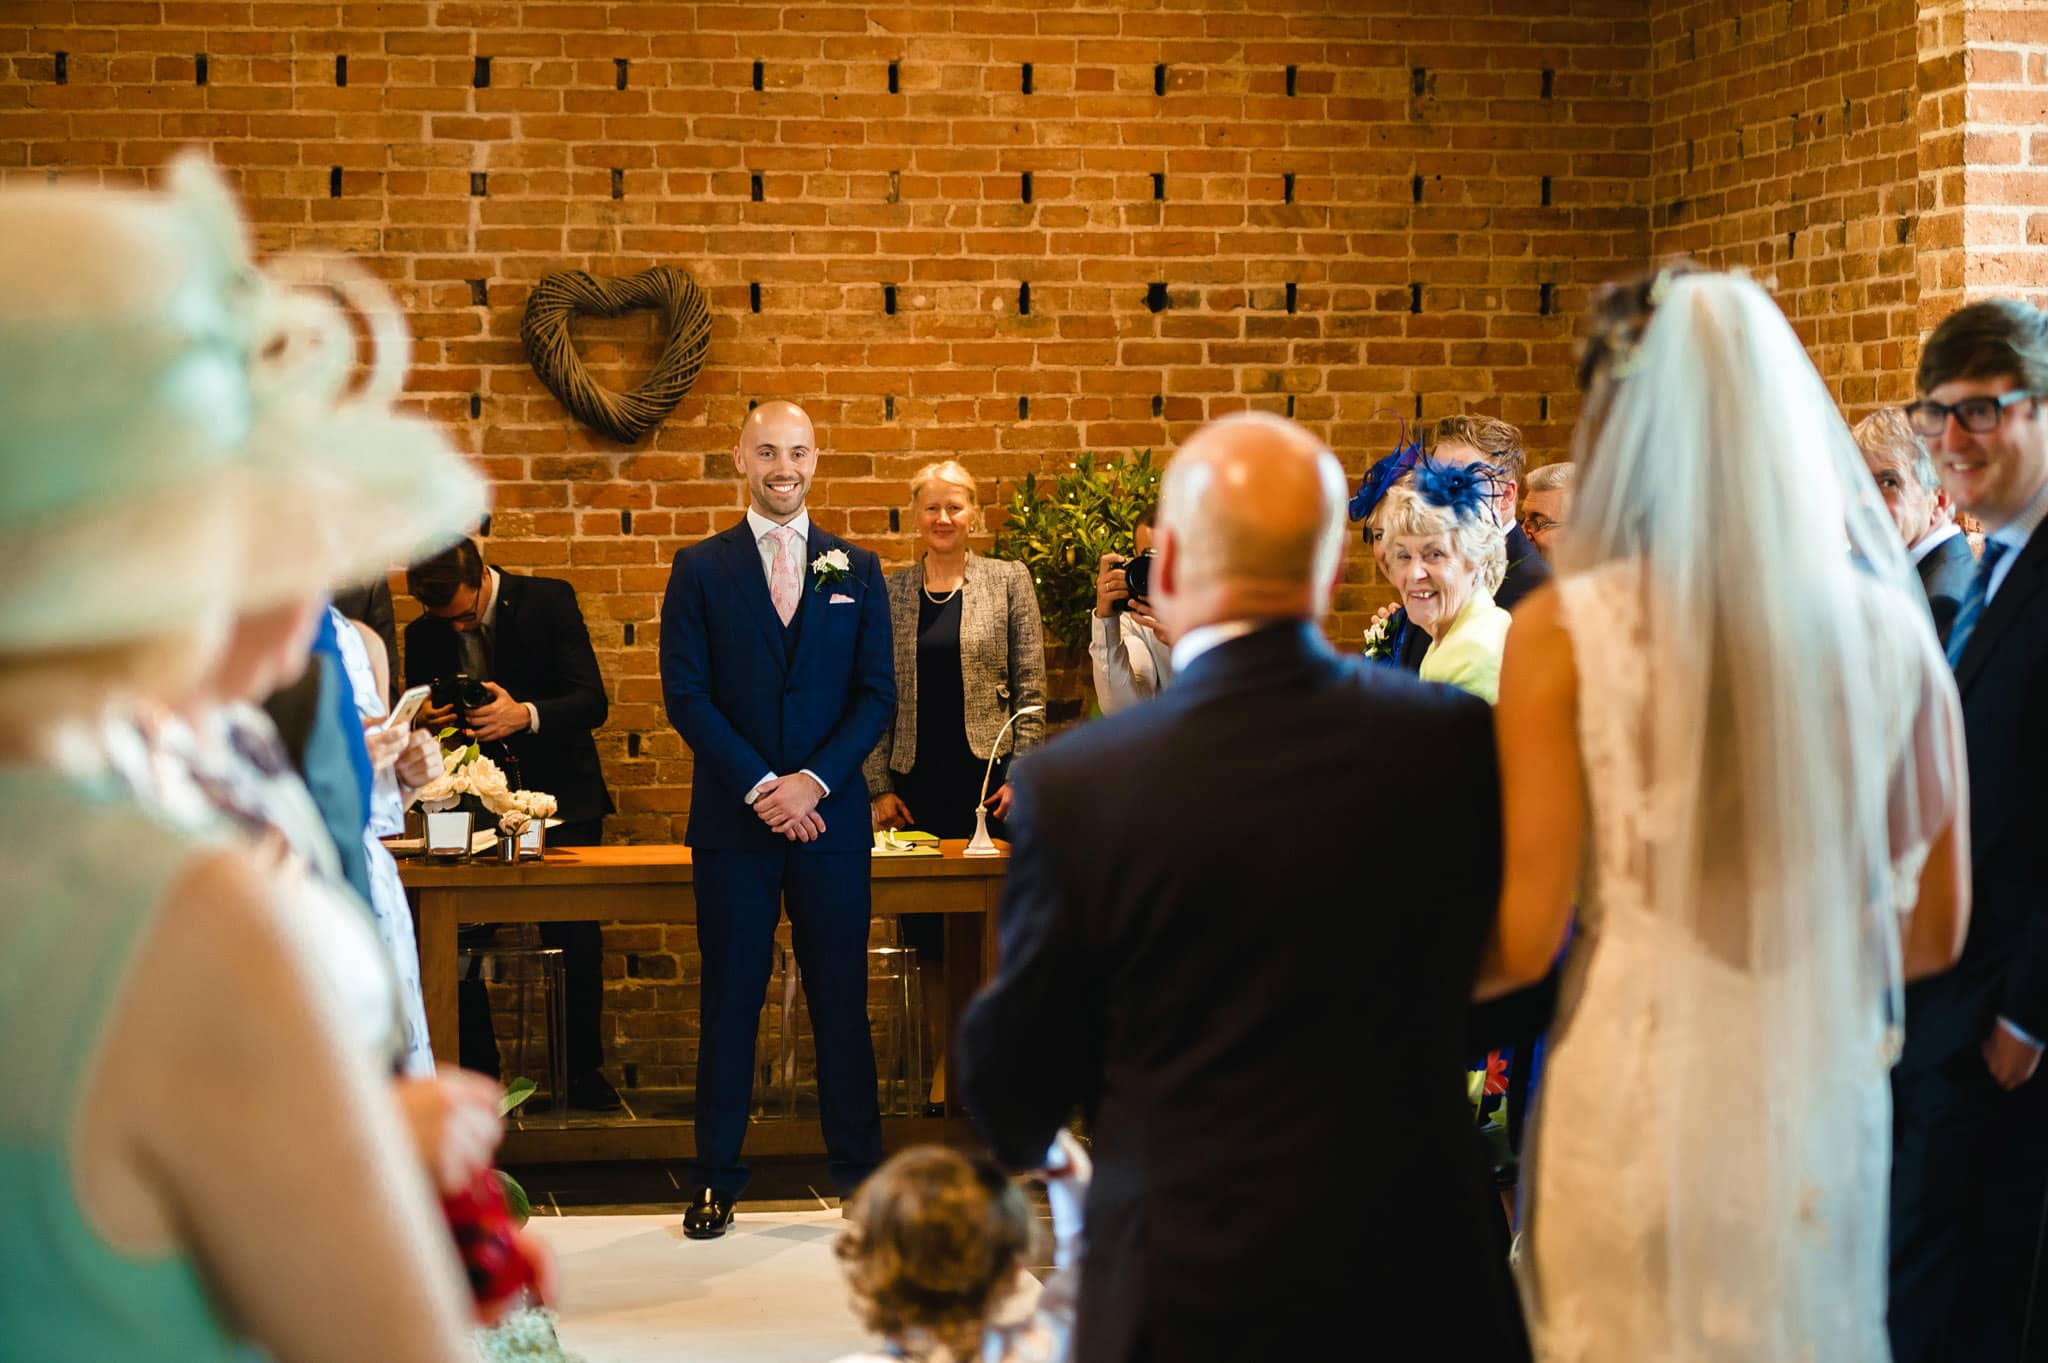 Wedding at Redhouse Barn in Stoke Prior, Worcestershire 63